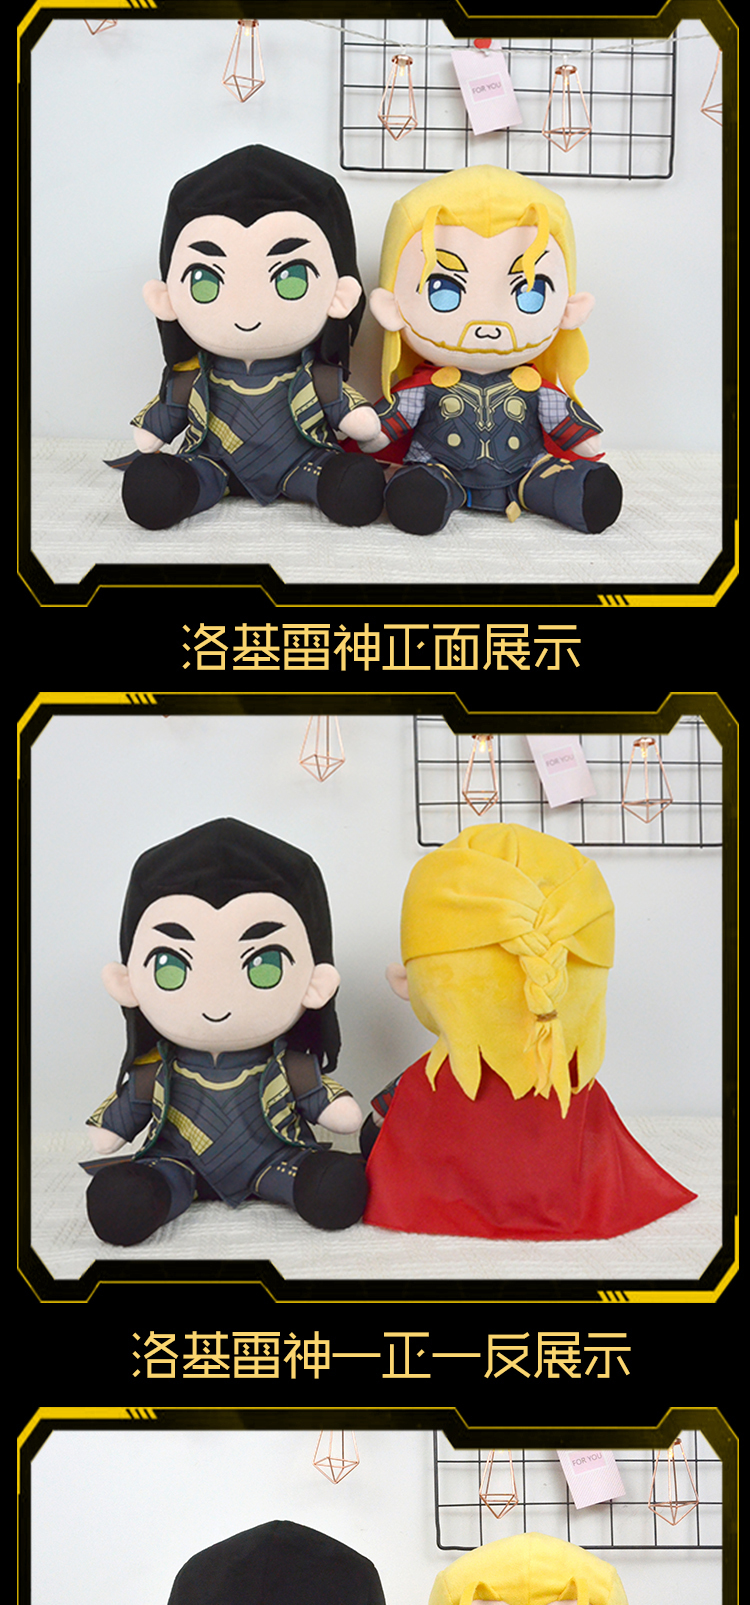 Thor plush toy The Avengers Thor Odinson Loki Q style plush doll cosplay 30cm clothe can taken off soft pillow supplies gift (4)